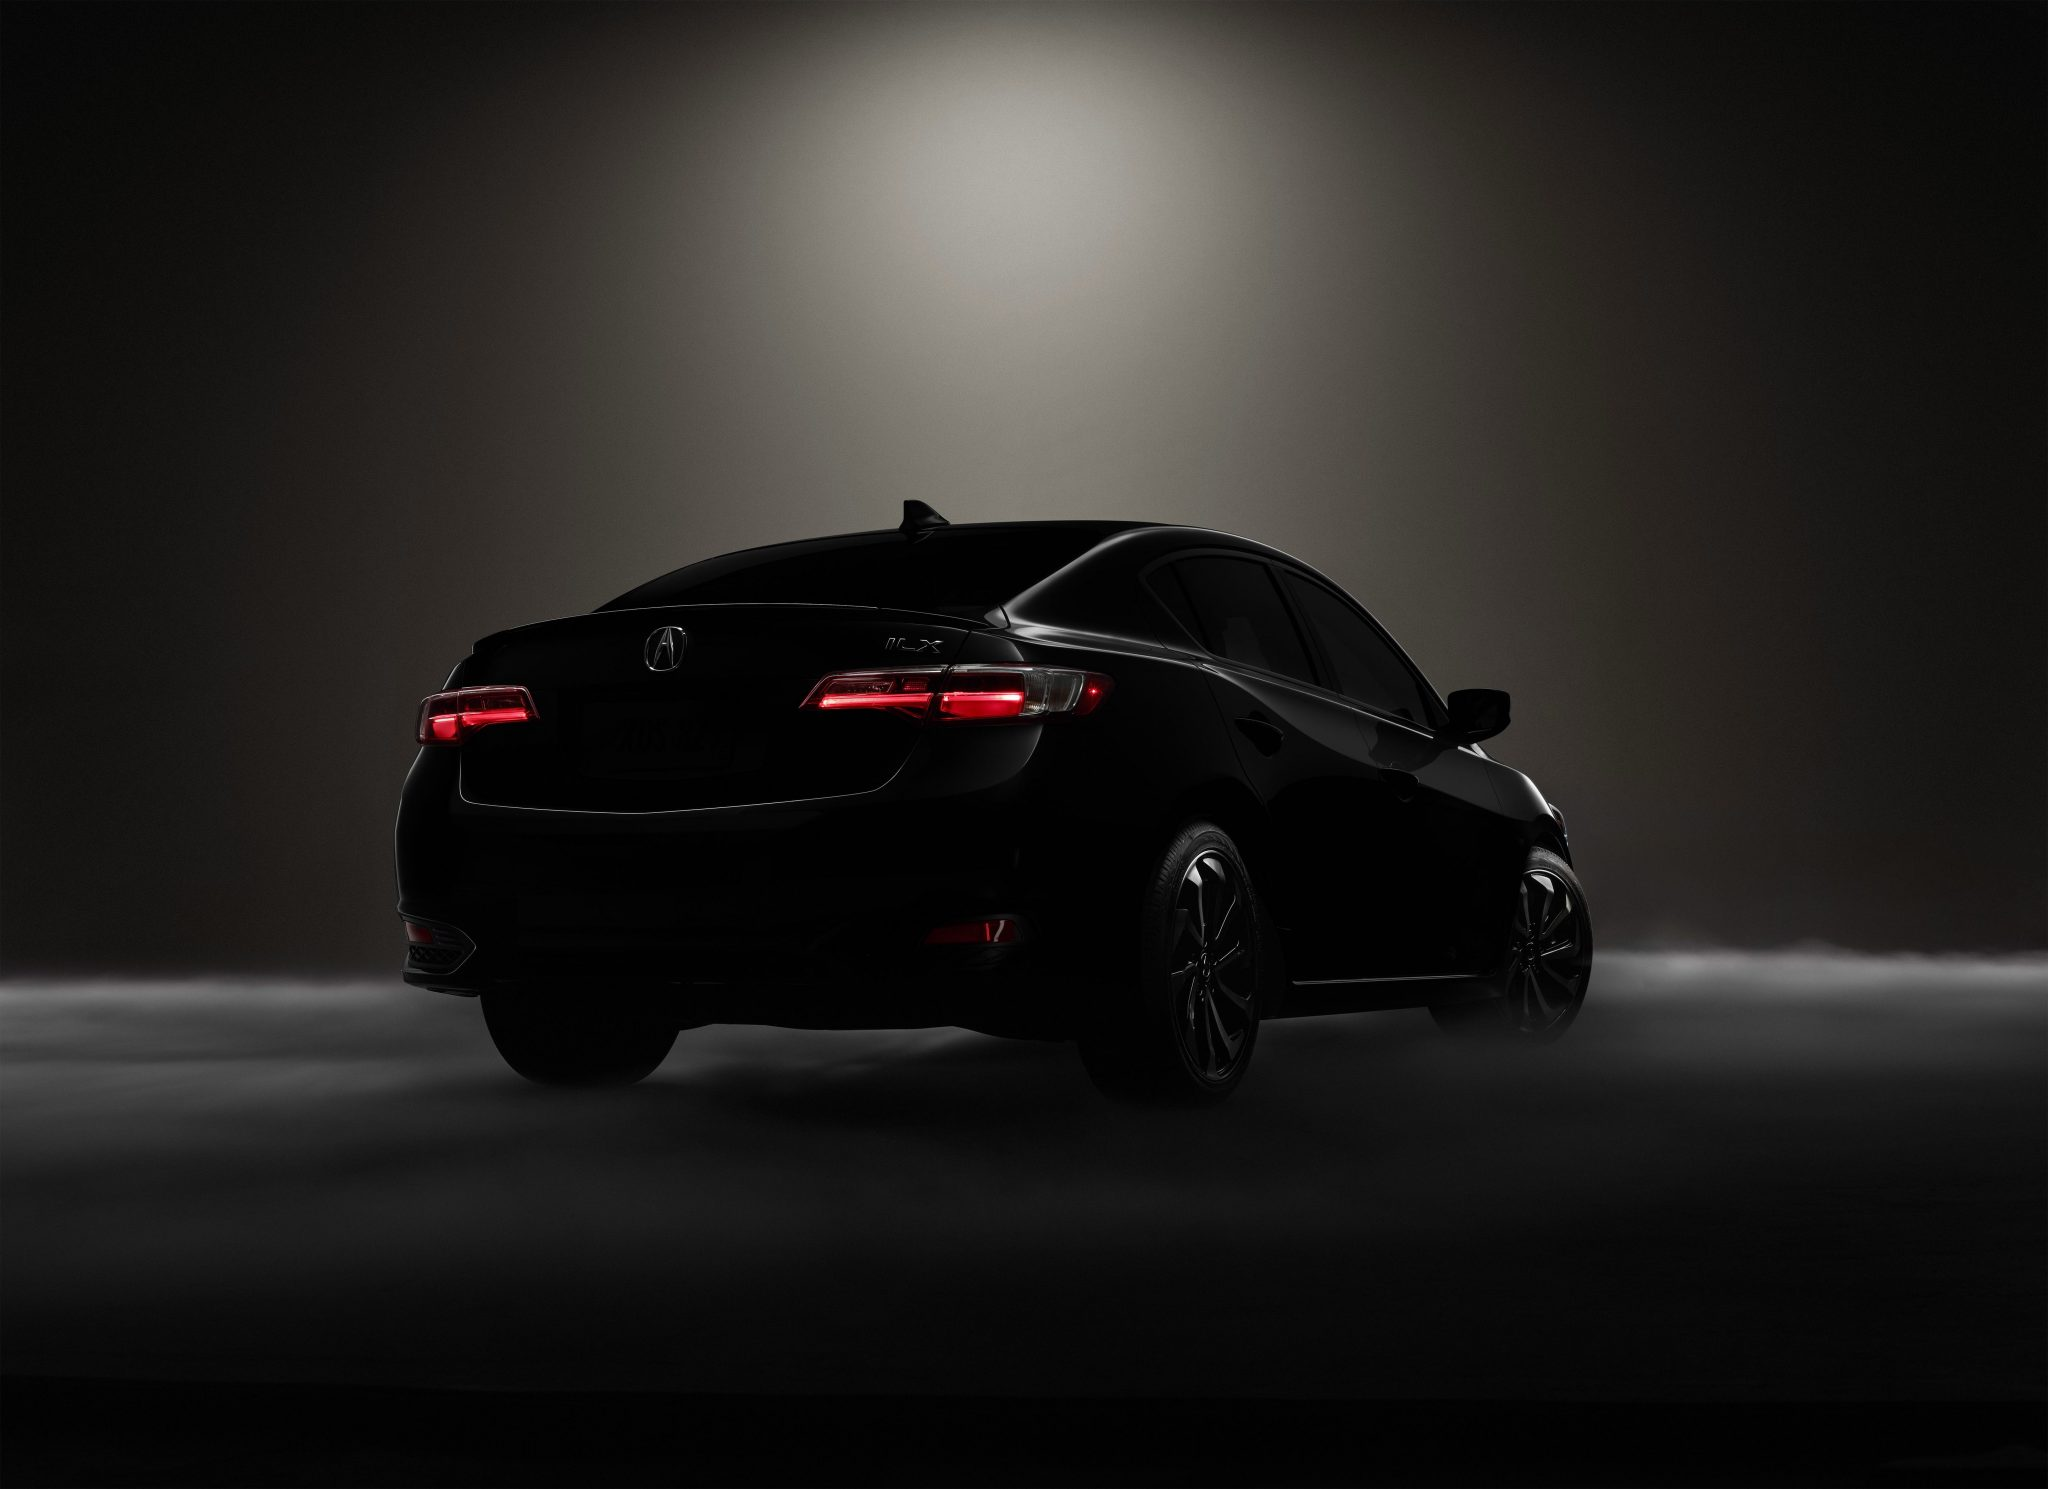 showroom inspired looks pin rlx this track the acura los angeles is in worthy cloaked performance